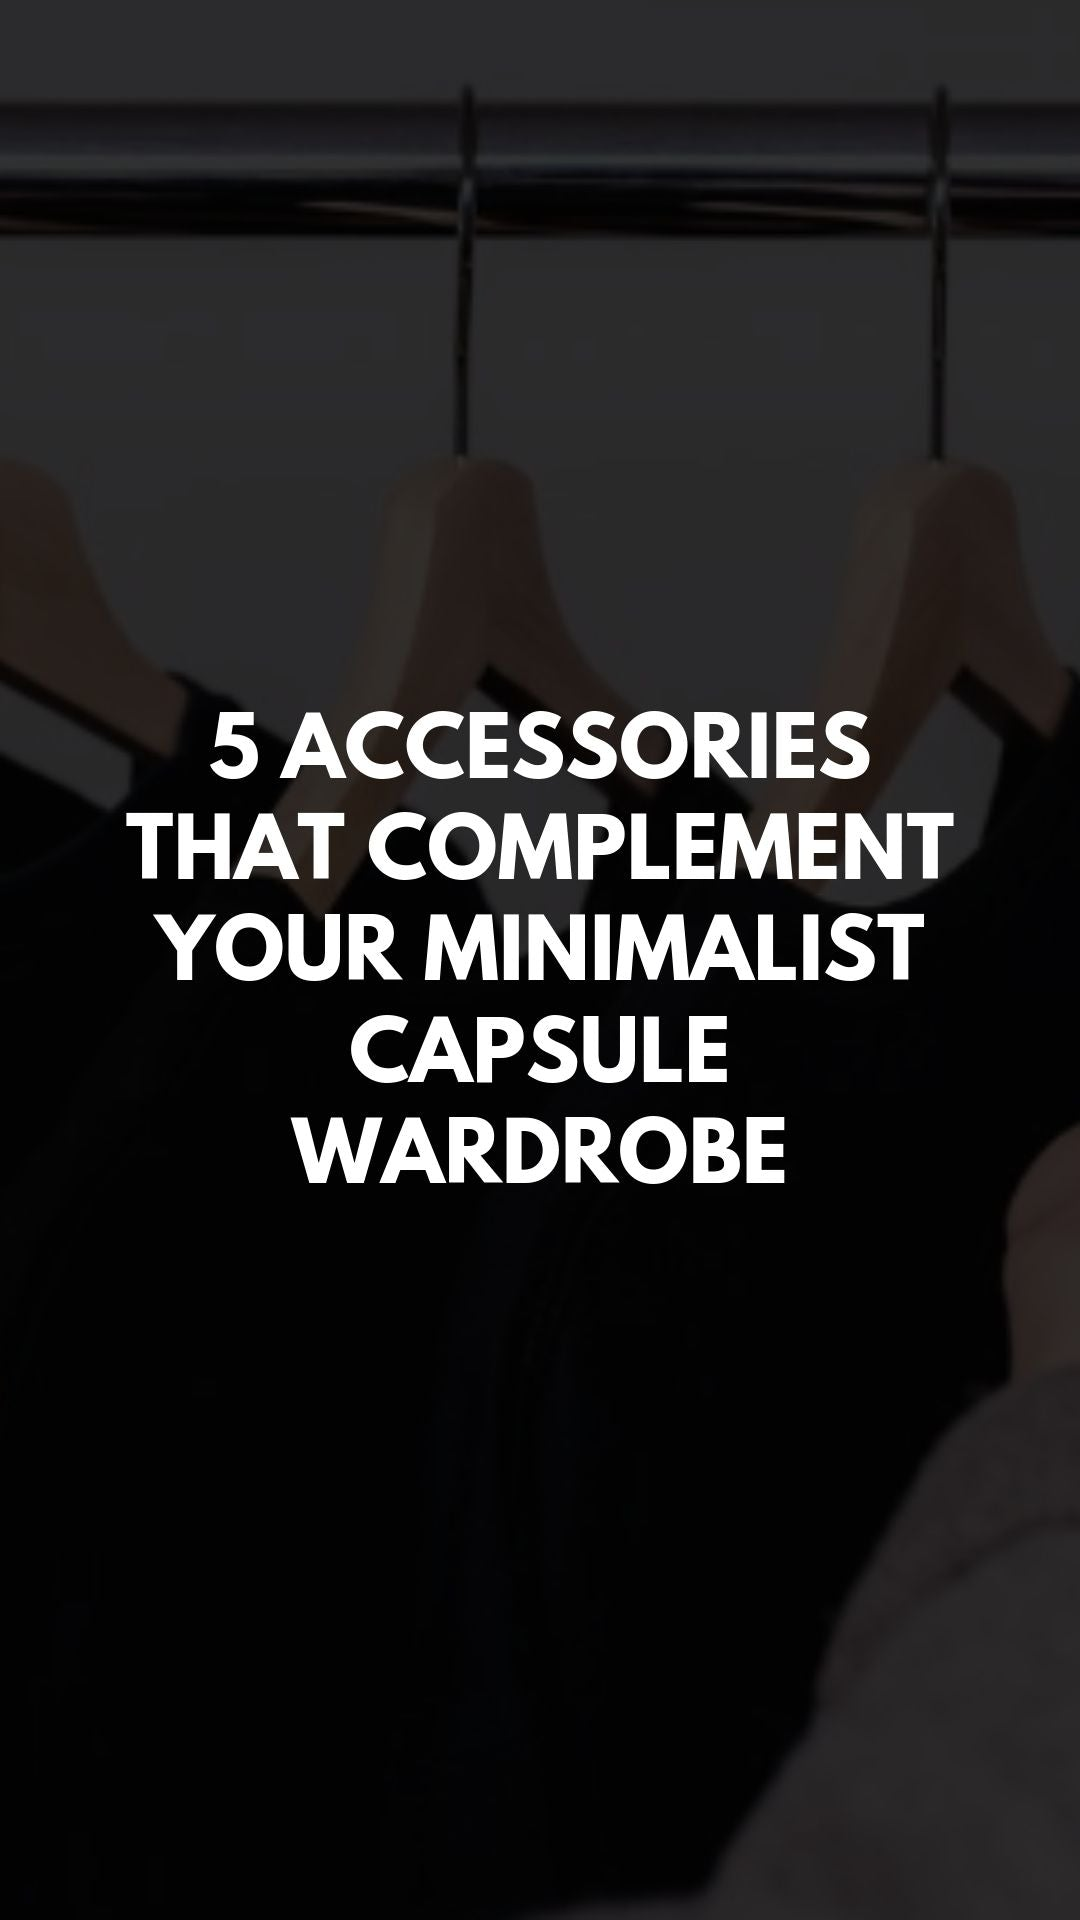 5 Accessories That Complement Your Minimalist Capsule Wardrobe